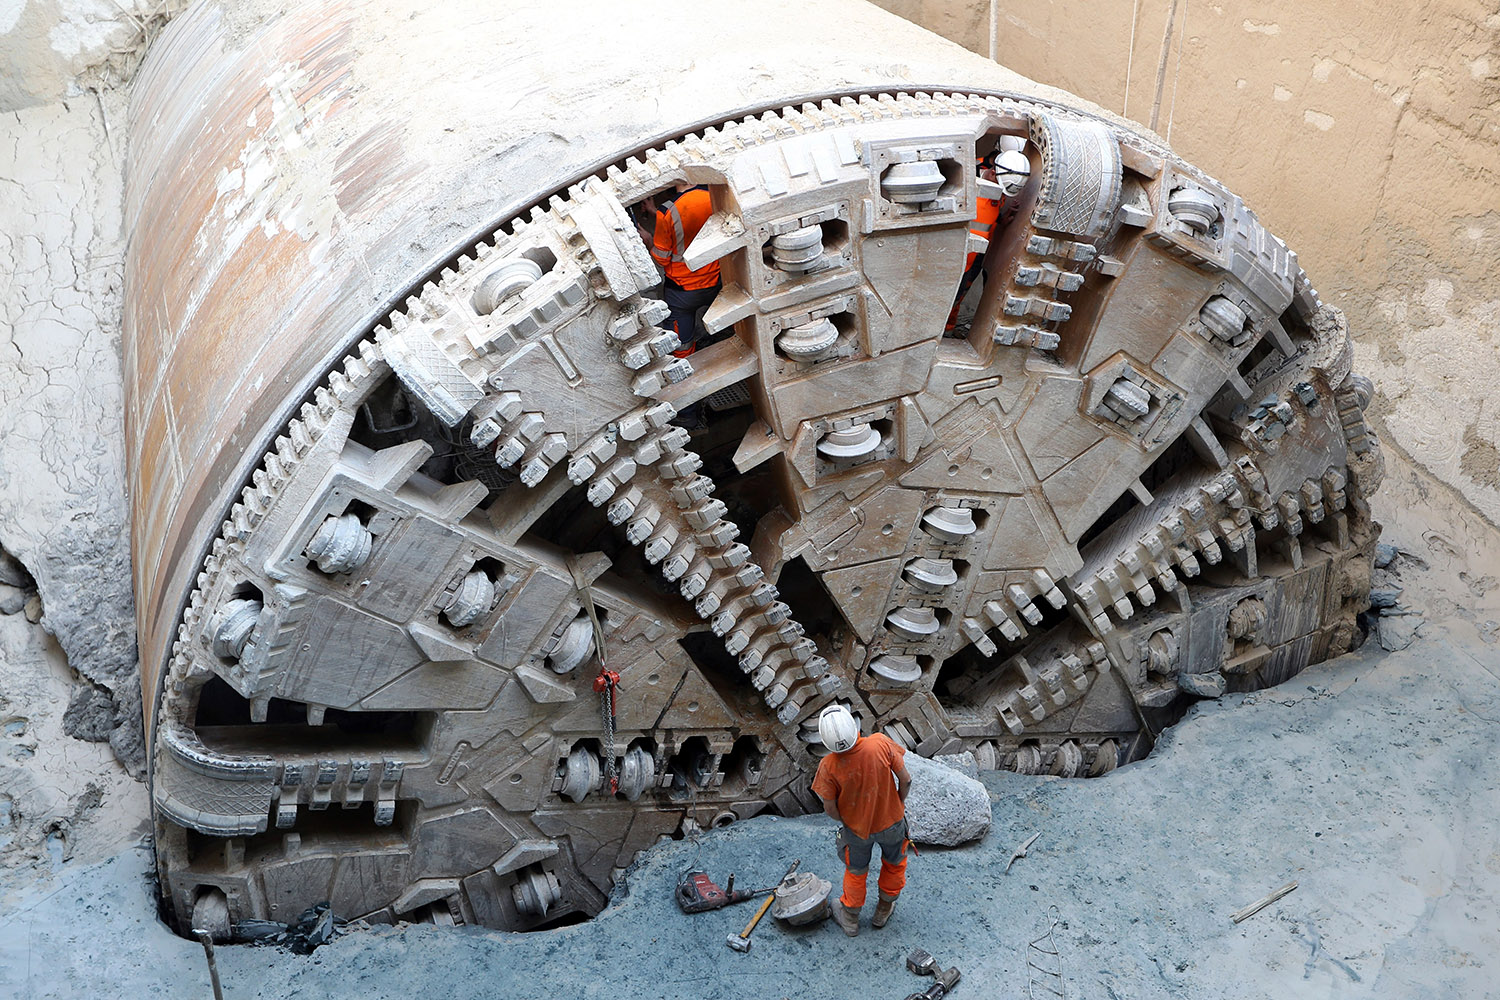 TOPSHOT - Workers tend to the tunnel boring machine which has finished digging the future west-east line of the tramway in Nice, southeastern France, on October 24, 2017. The elements of the tunnel boring machine will be demounted until december. The extension of the tramway in Nice will connect the city from West to East over a distance of 7,7 km. The line will be open to the public in 2018. / AFP PHOTO / VALERY HACHE        (Photo credit should read VALERY HACHE/AFP/Getty Images)